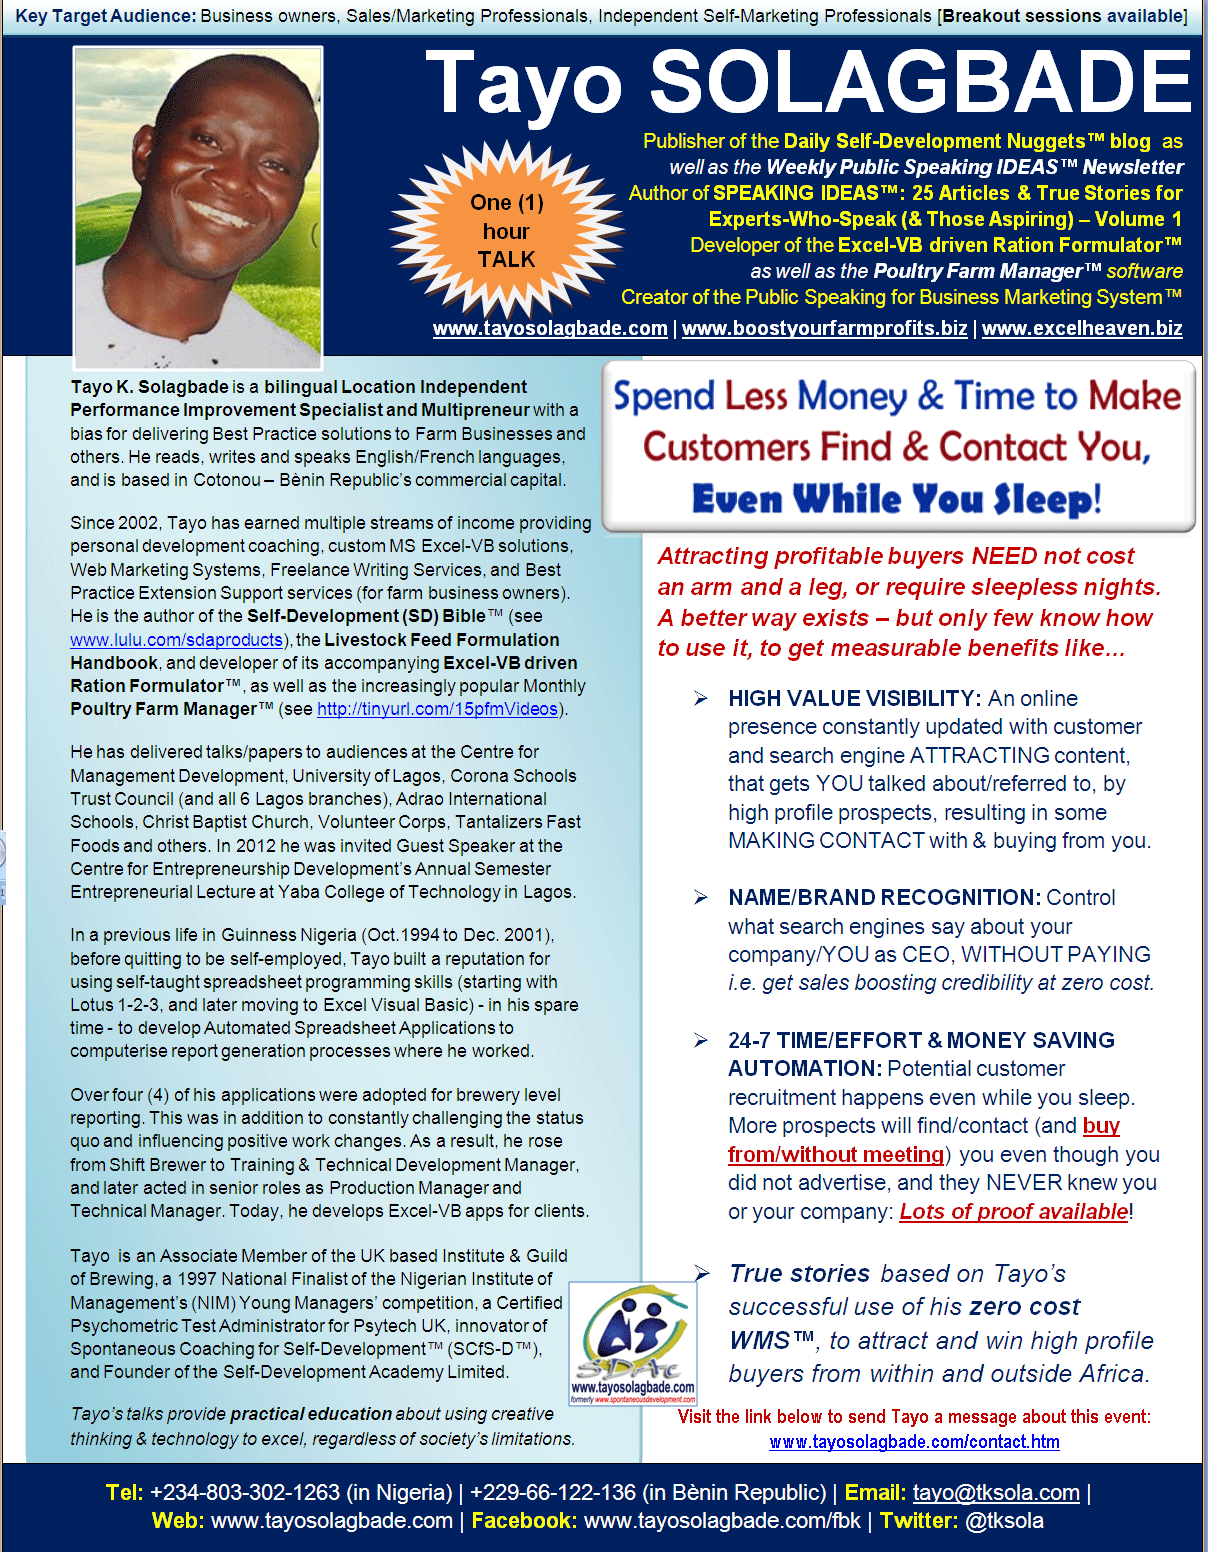 Click to download - PDF Speaker One Sheet for Tayo Solagbade's ONE HOUR TALK titled 'Spend Less Money & Time to Make Customers Find & Contact You, Even While You Sleep!'